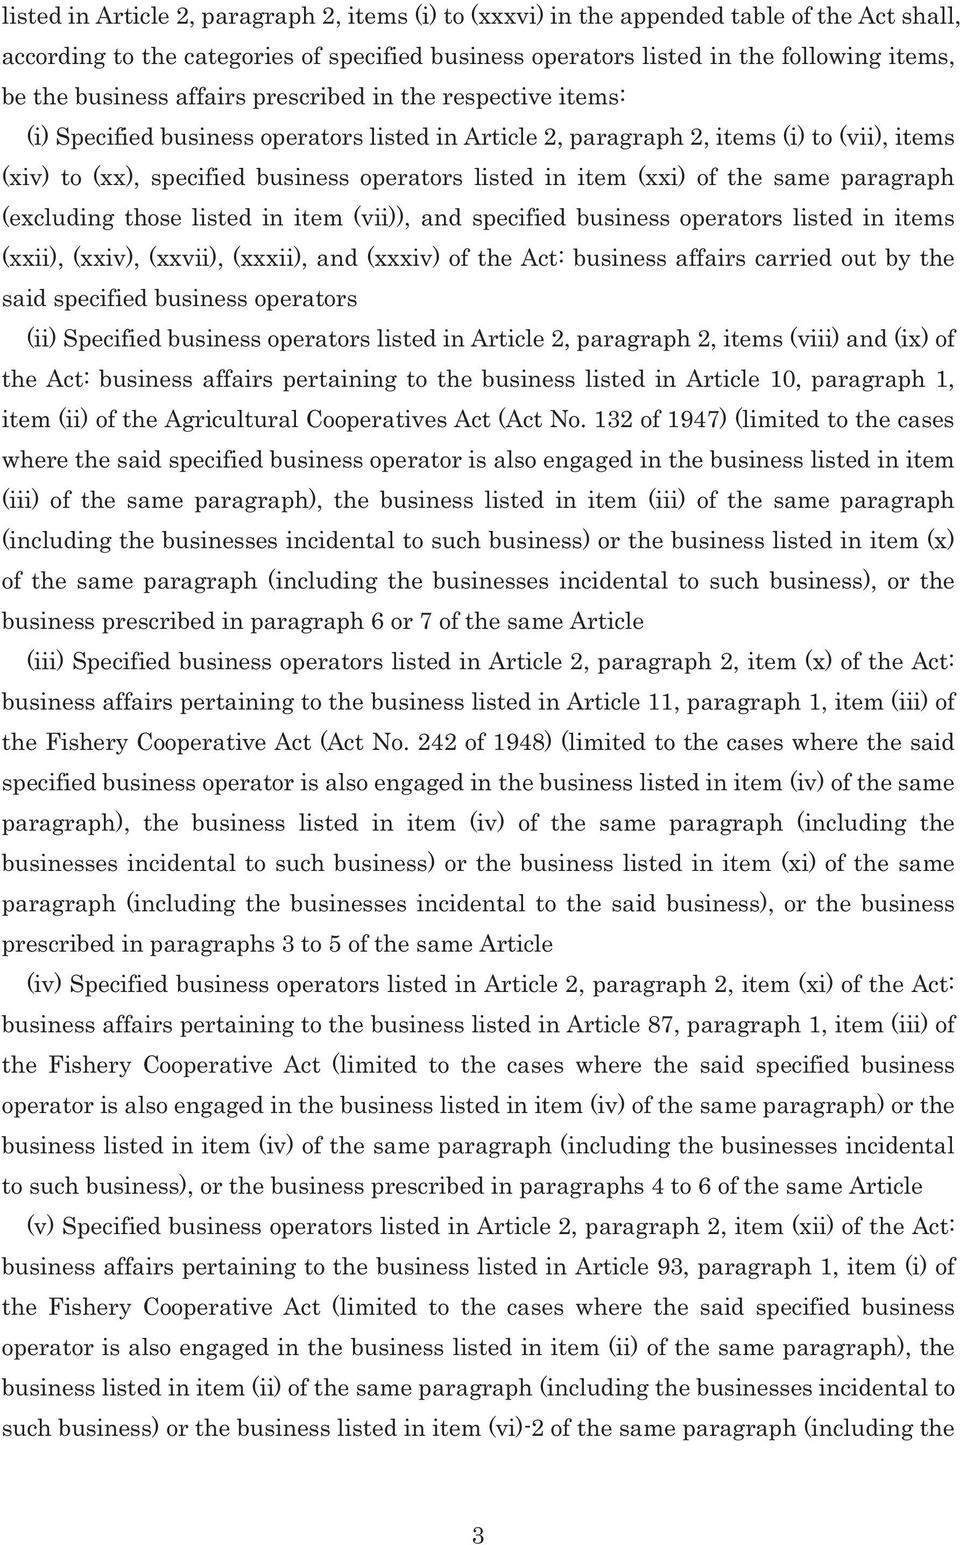 item (xxi) of the same paragraph (excluding those listed in item (vii)), and specified business operators listed in items (xxii), (xxiv), (xxvii), (xxxii), and (xxxiv) of the Act: business affairs